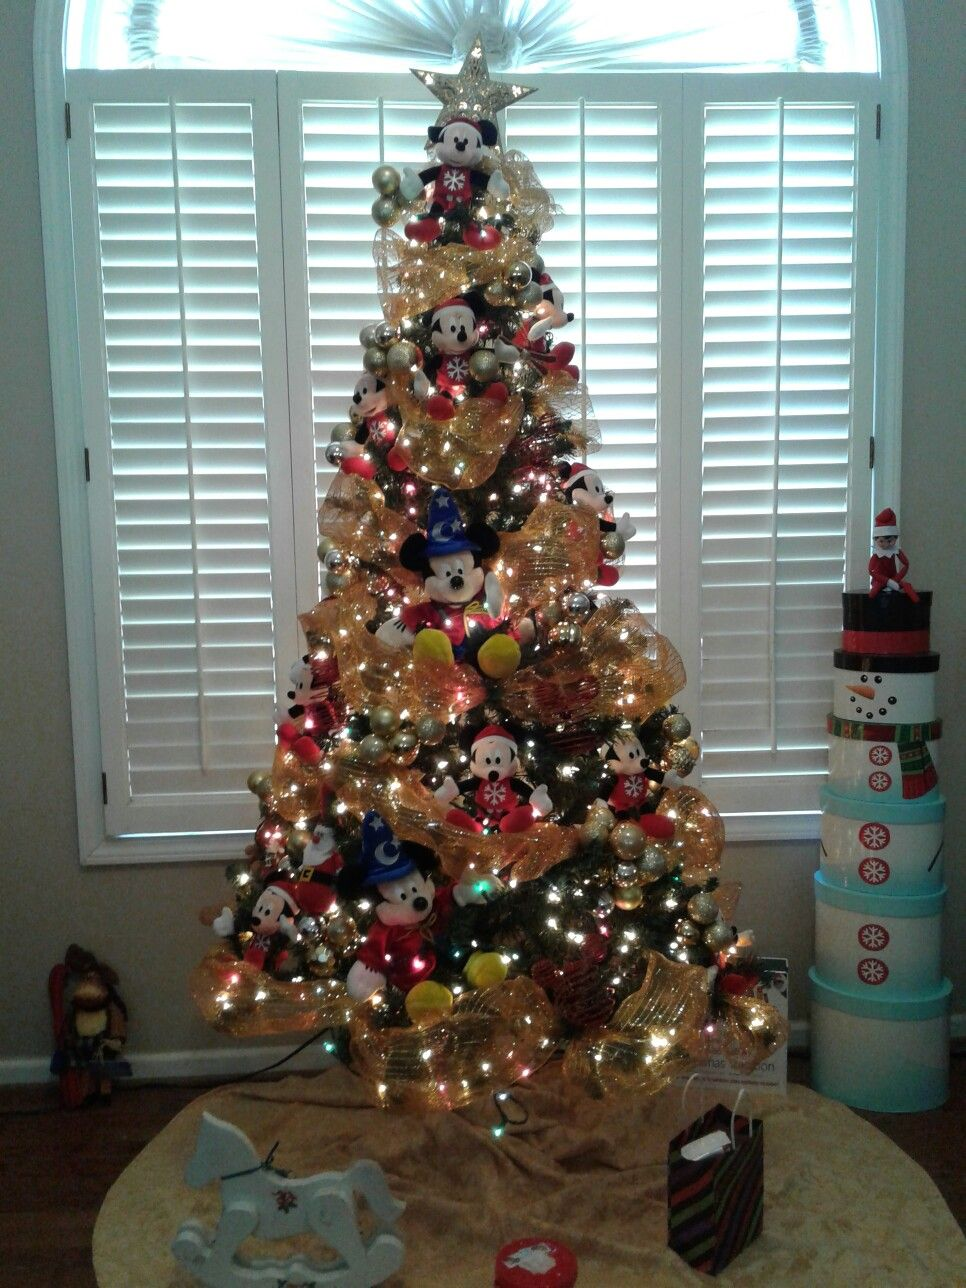 mickey mouse christmas tree decoration - Christmas Tree Decorations Mickey Mouse